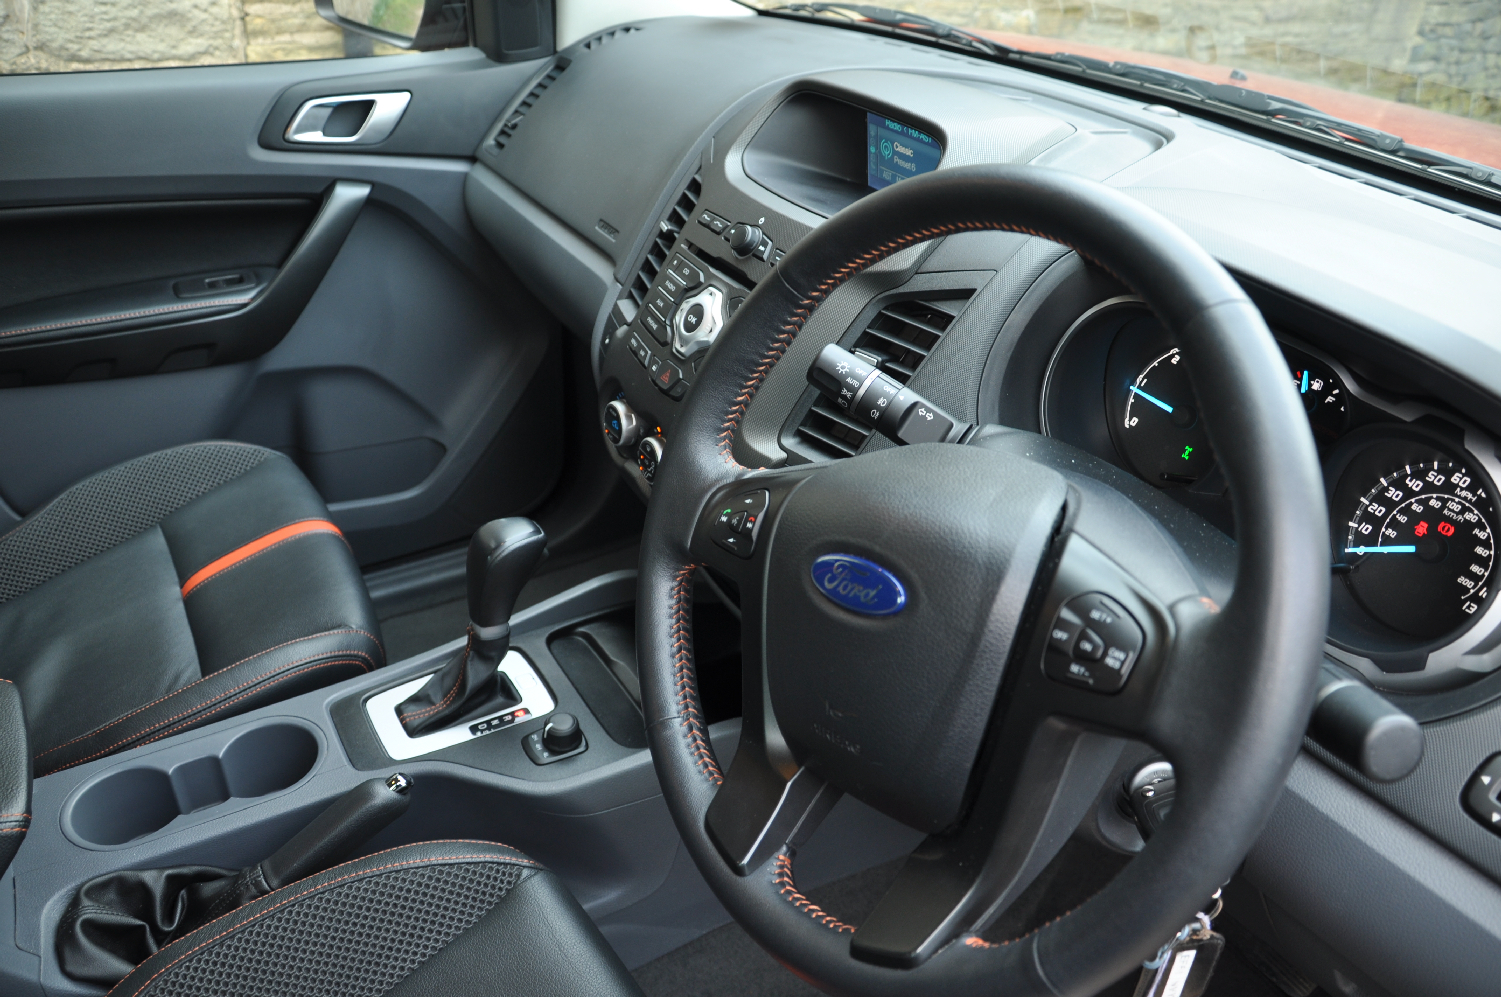 2012 Ford Ranger Wildtrak 3-2 diesel automatic road test review by Oliver Hammond photo - dashboard